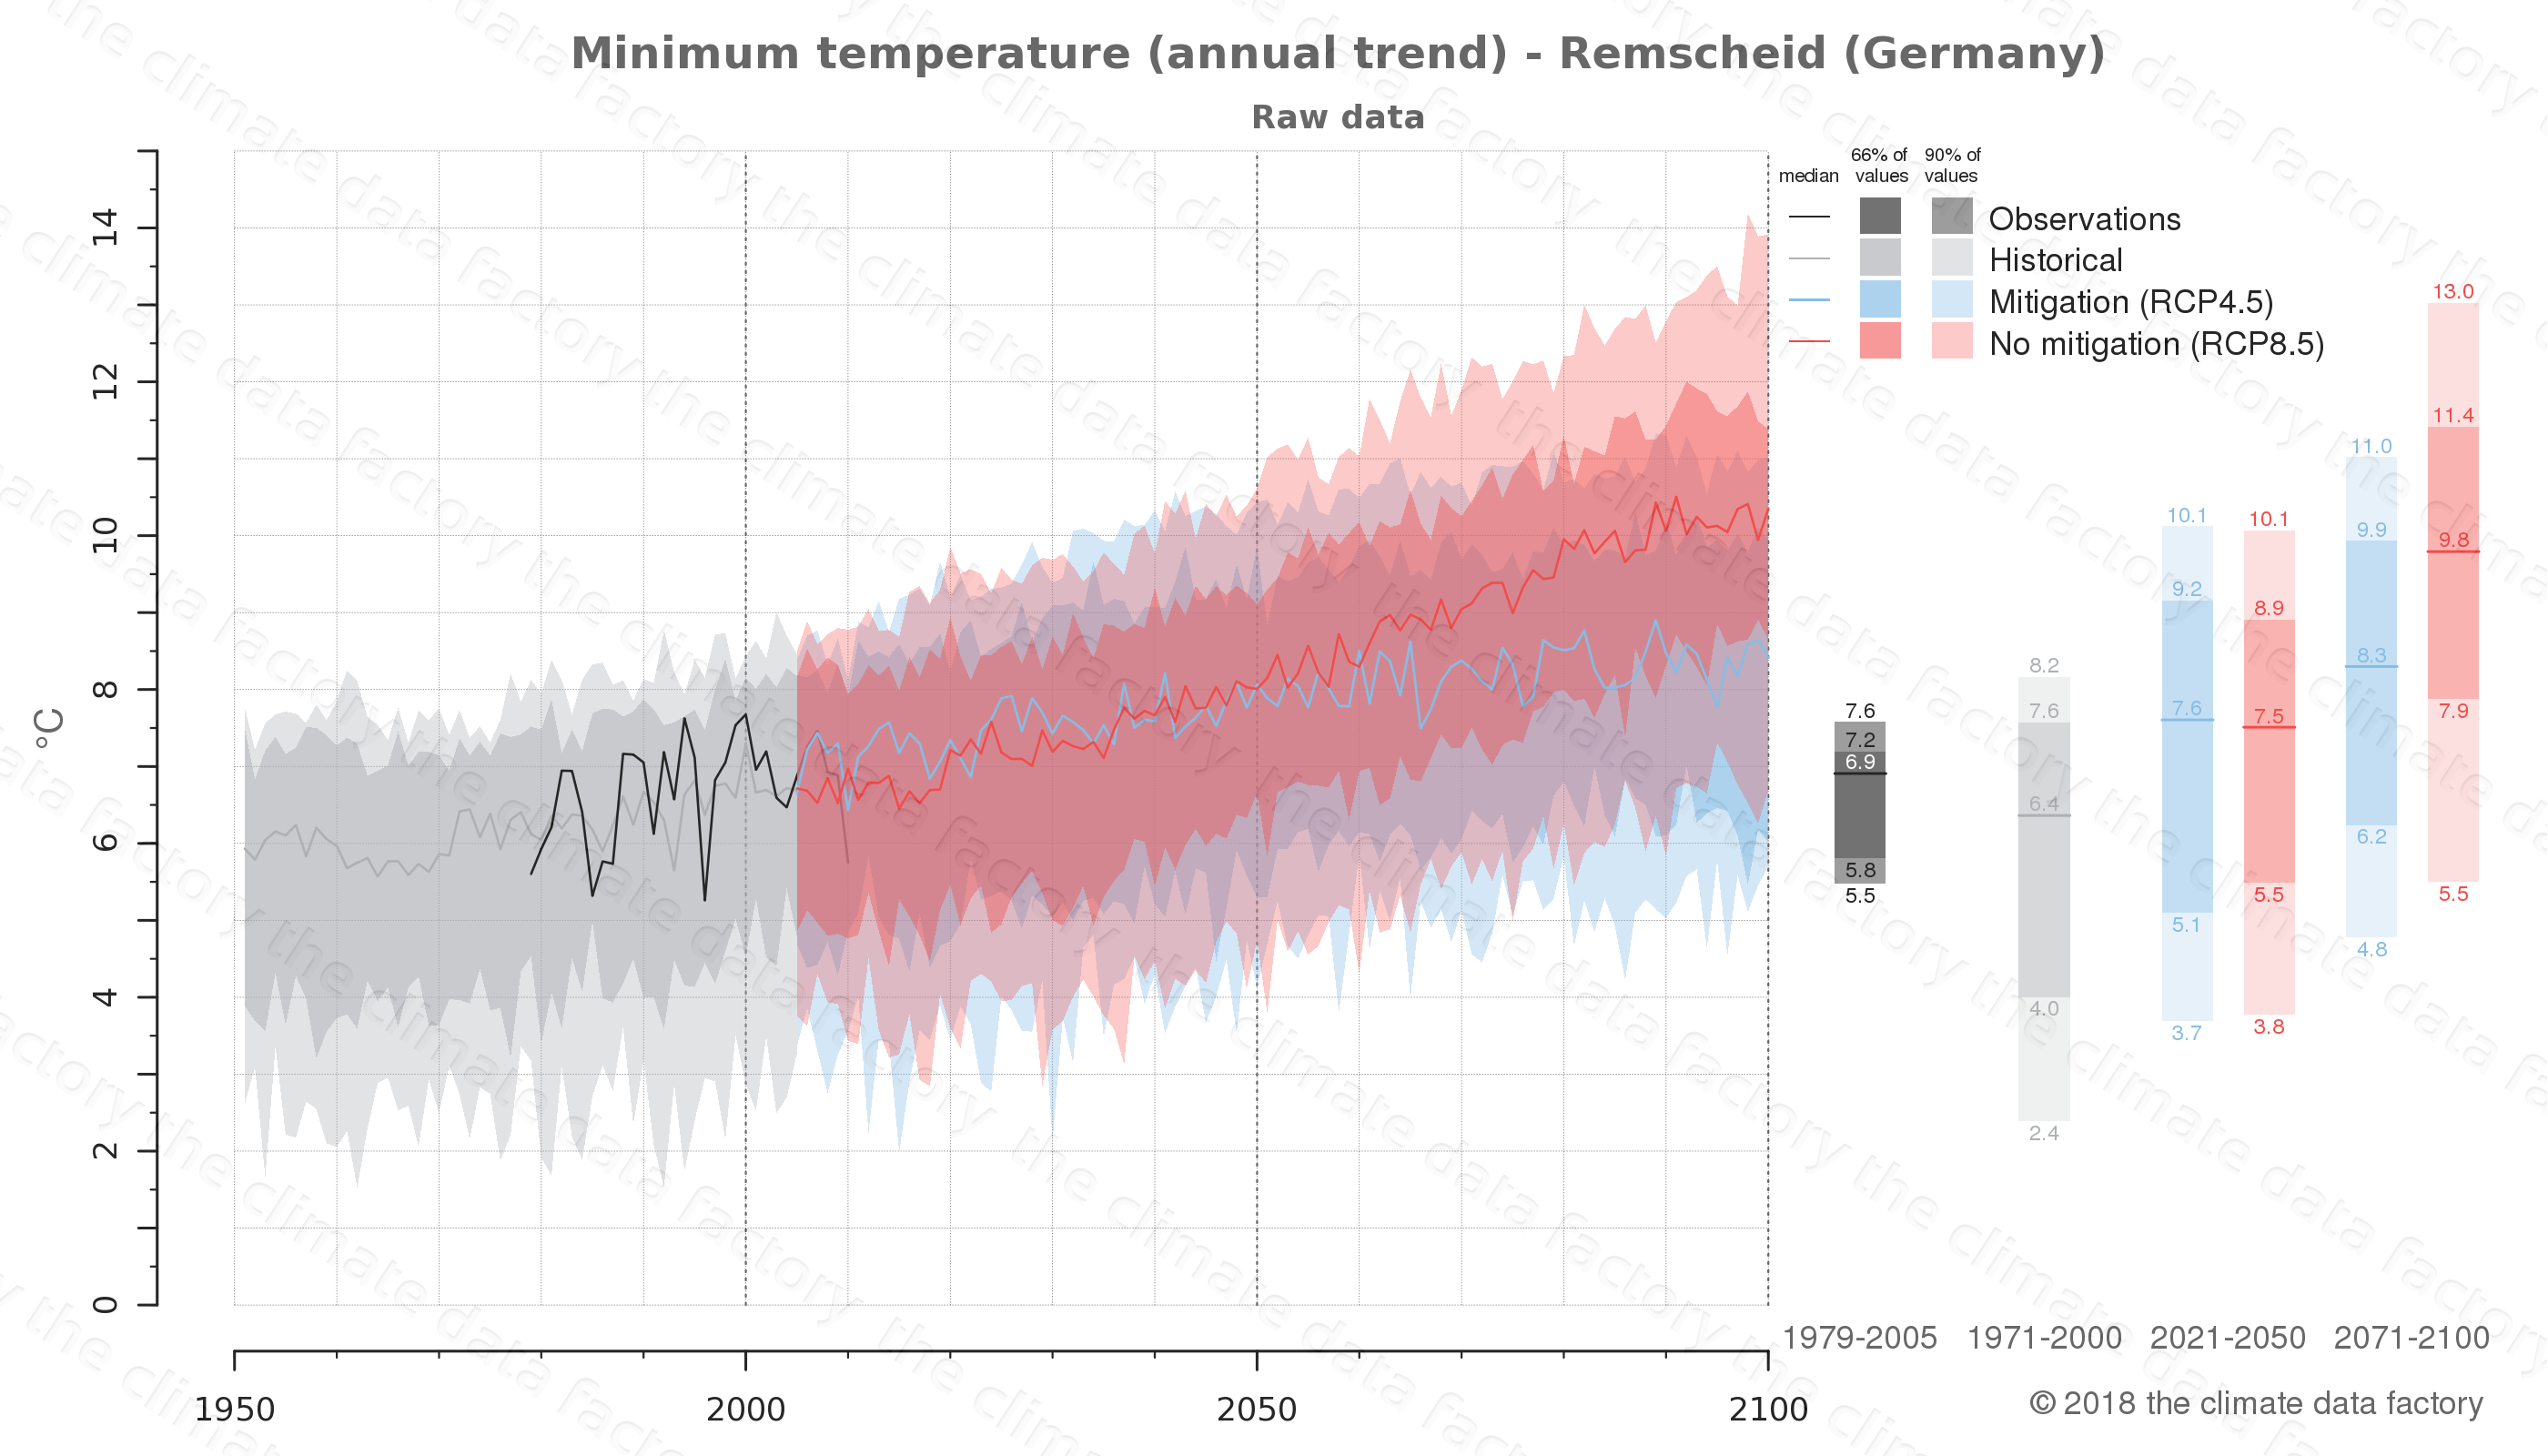 climate change data policy adaptation climate graph city data minimum-temperature remscheid germany